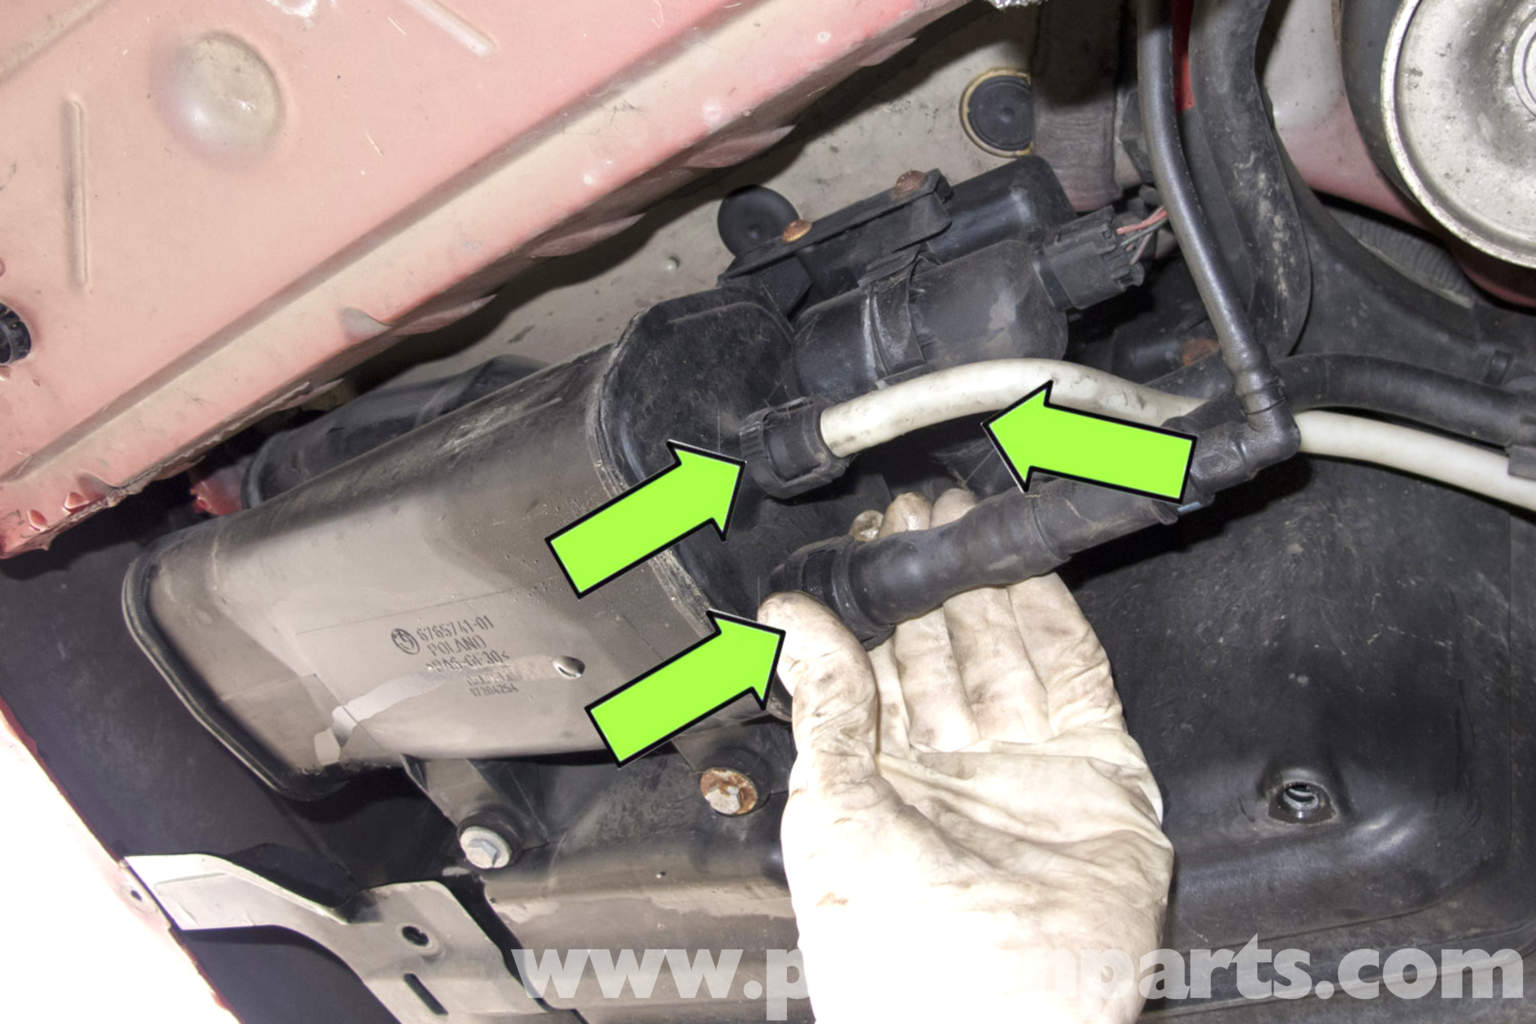 Showthread in addition Mazda 6 Wiring Diagram together with 493558 How To Disable Daytime Running Lights 3 additionally 414420 2000 Lexus Es 300 Low Miles 6 3k furthermore Watch. on toyota fuel filter location